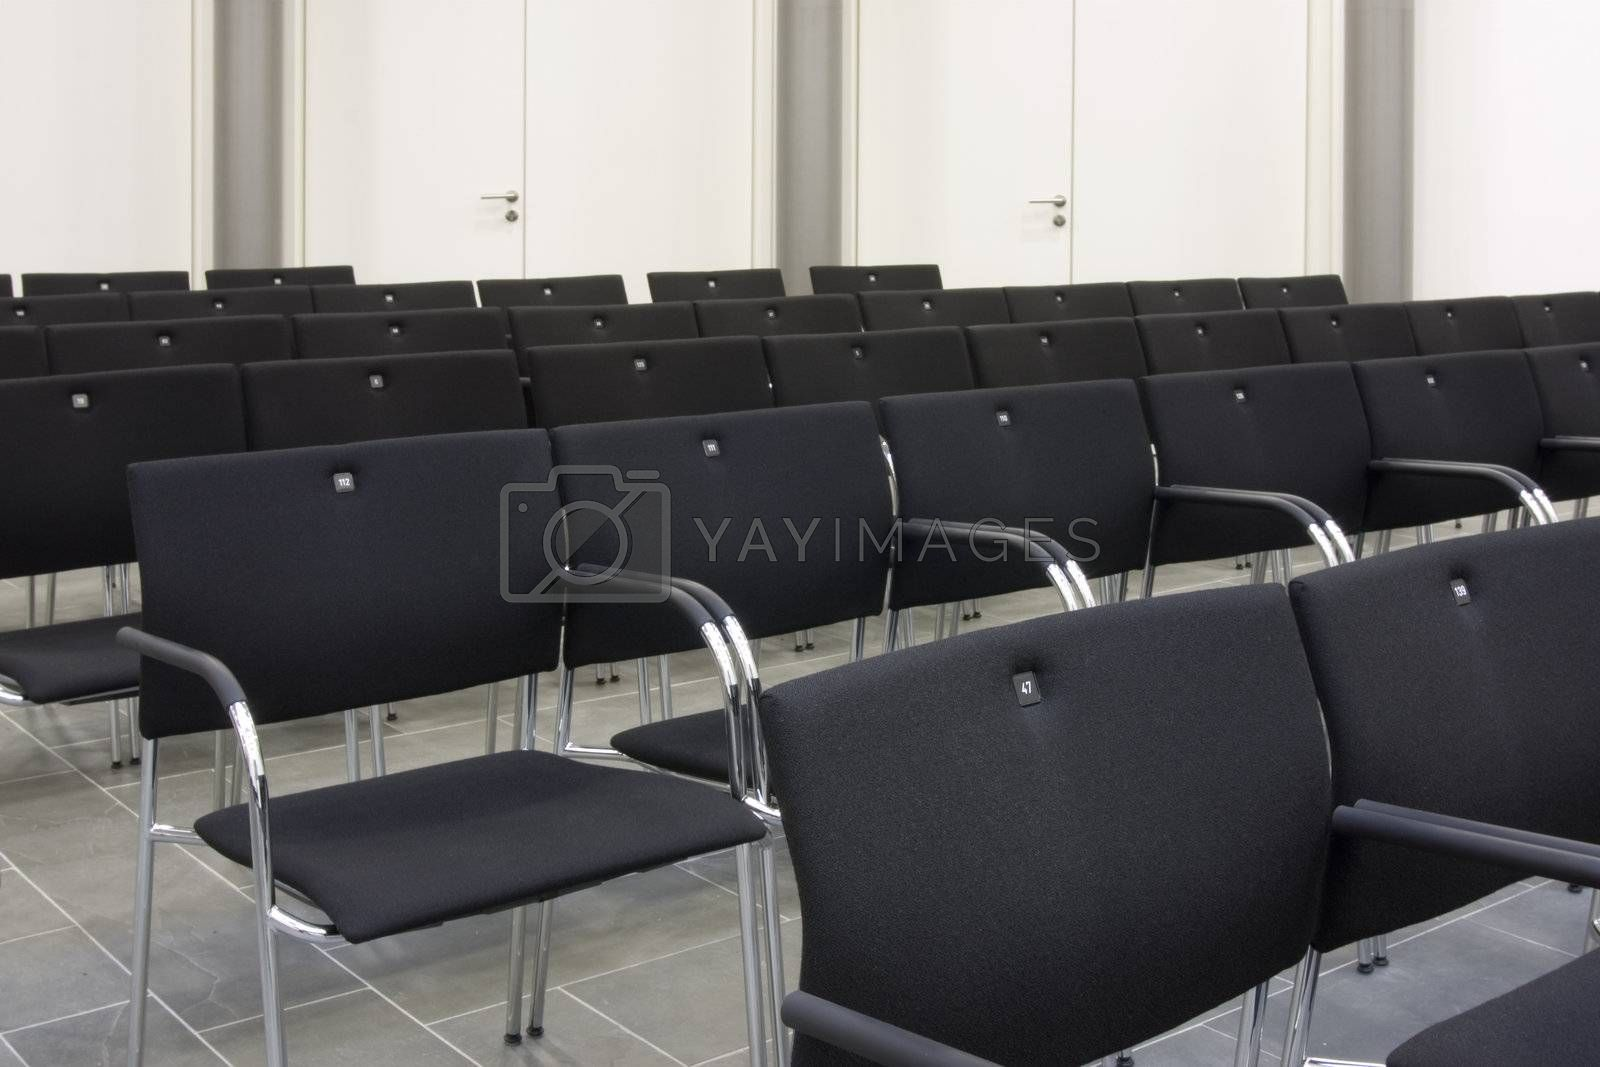 Black chairs of a lecture hall in a row